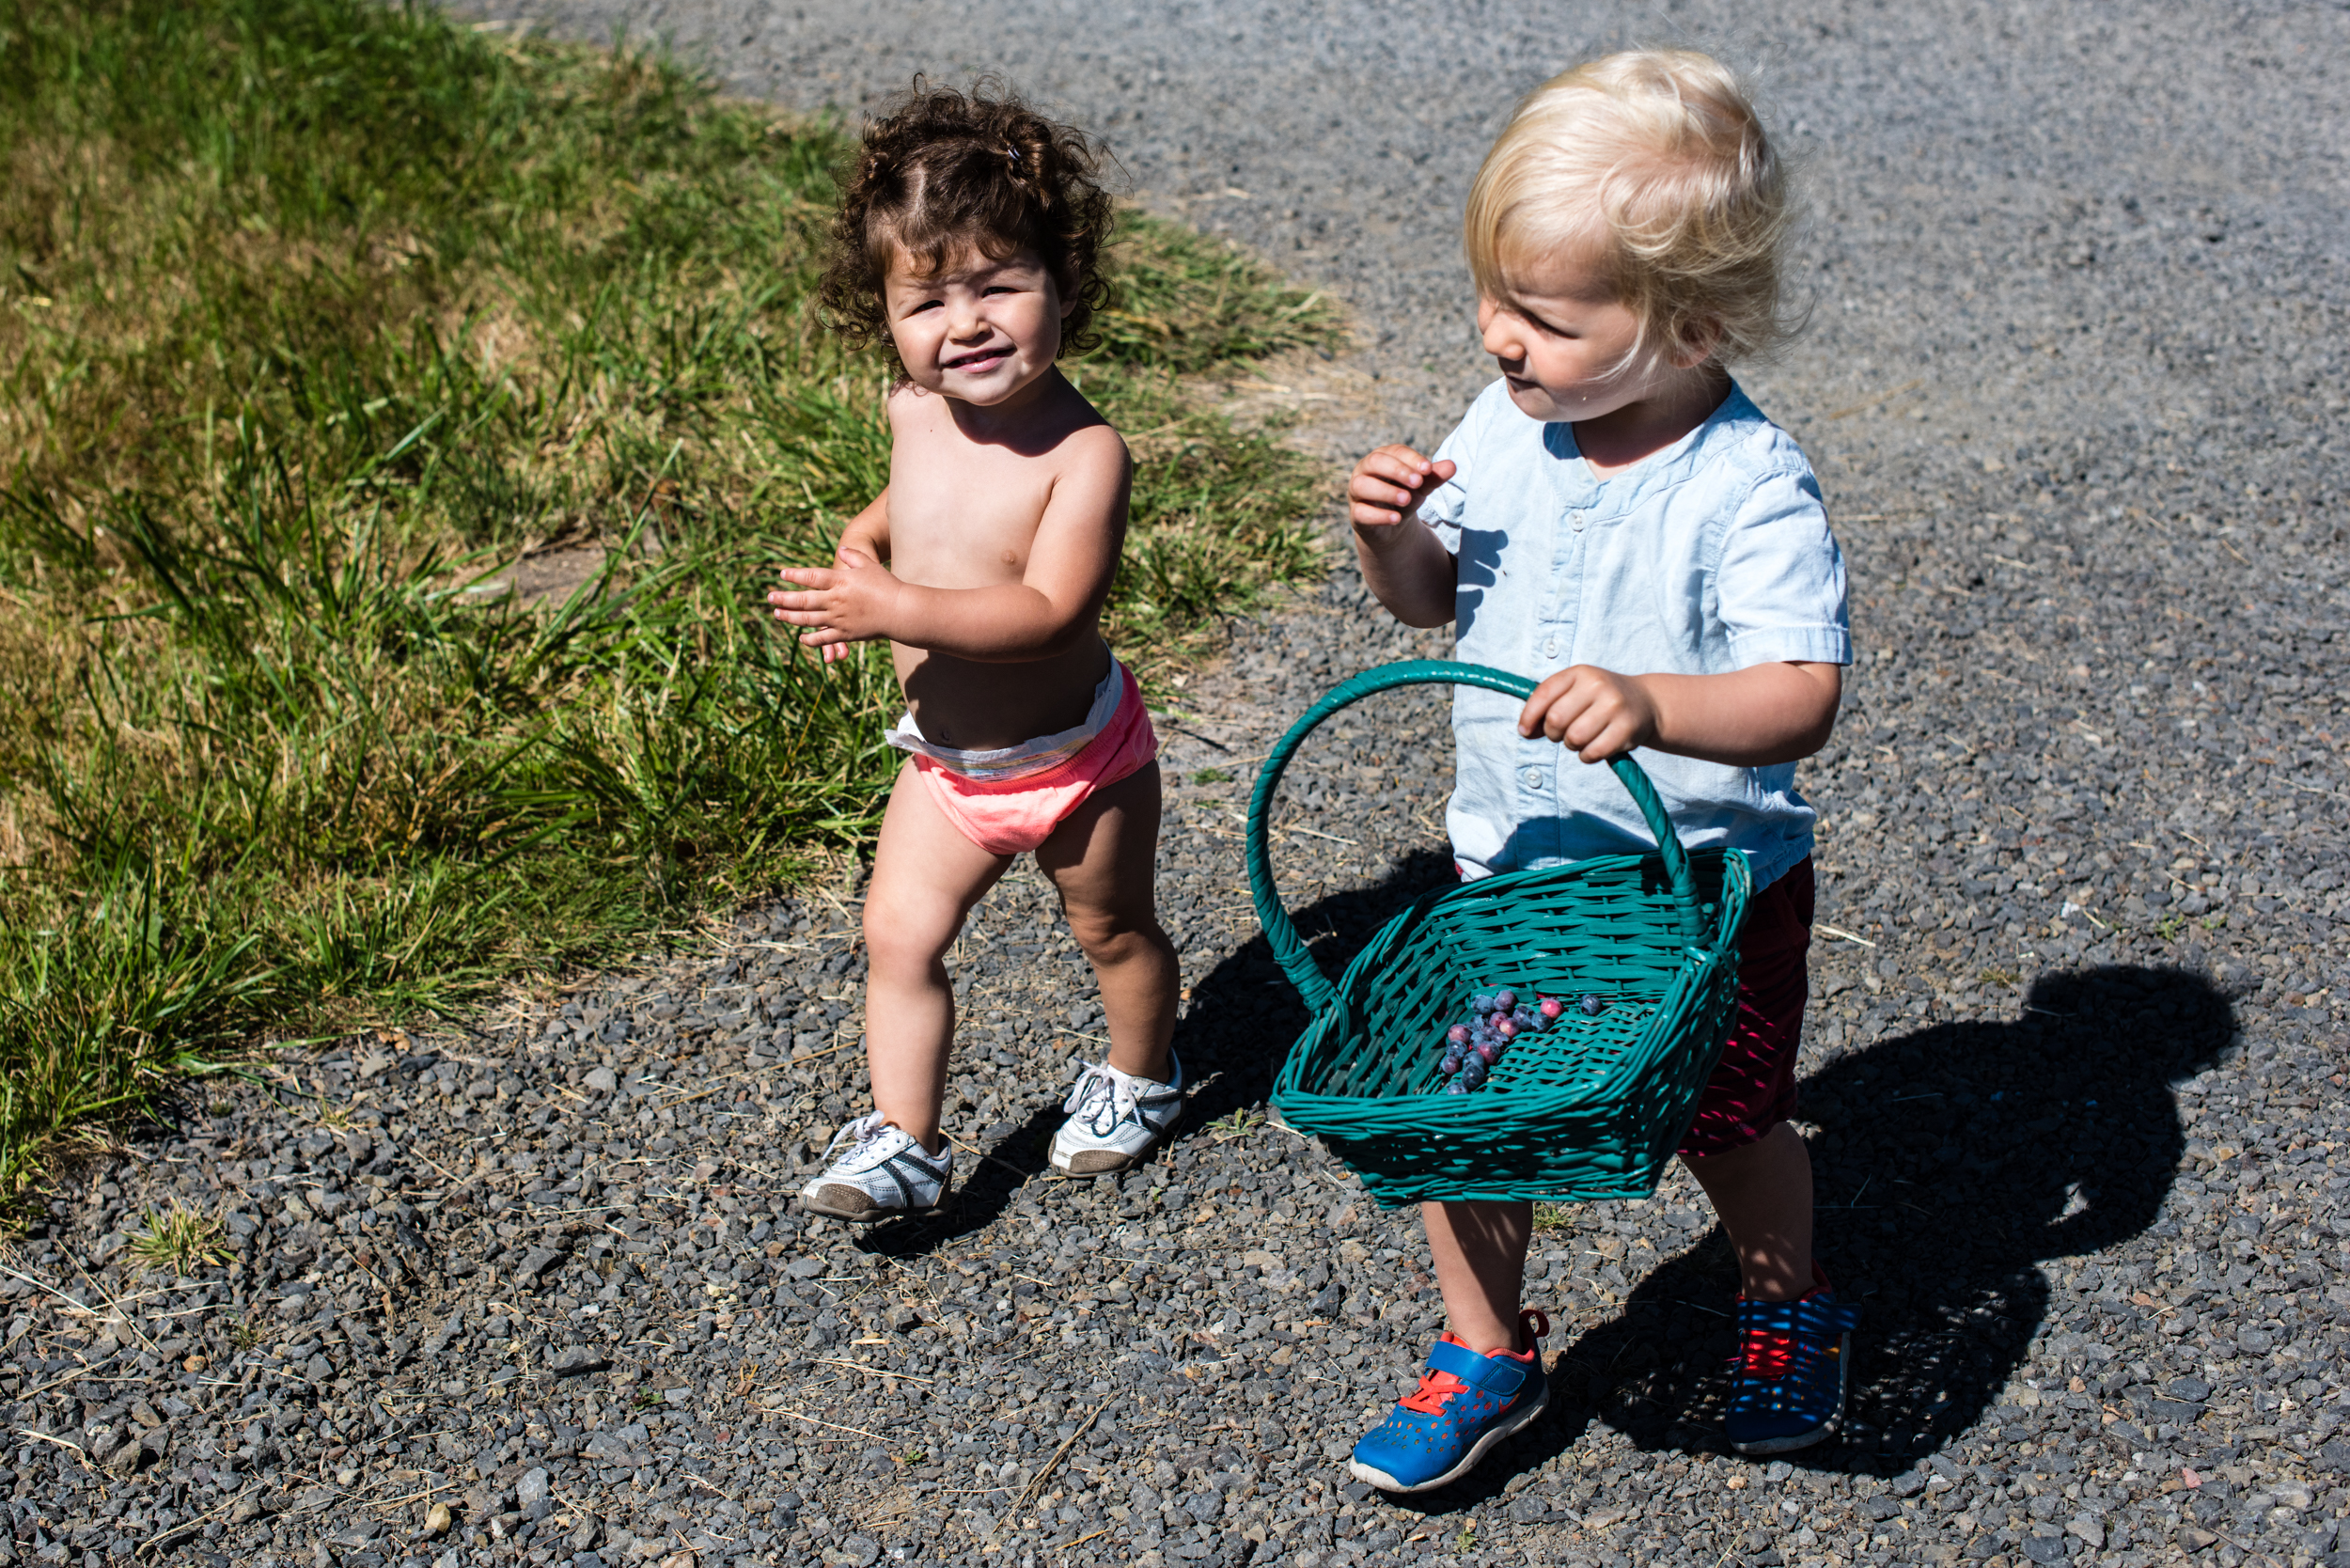 And now for some cute berry-picking kids from The Croft Farm